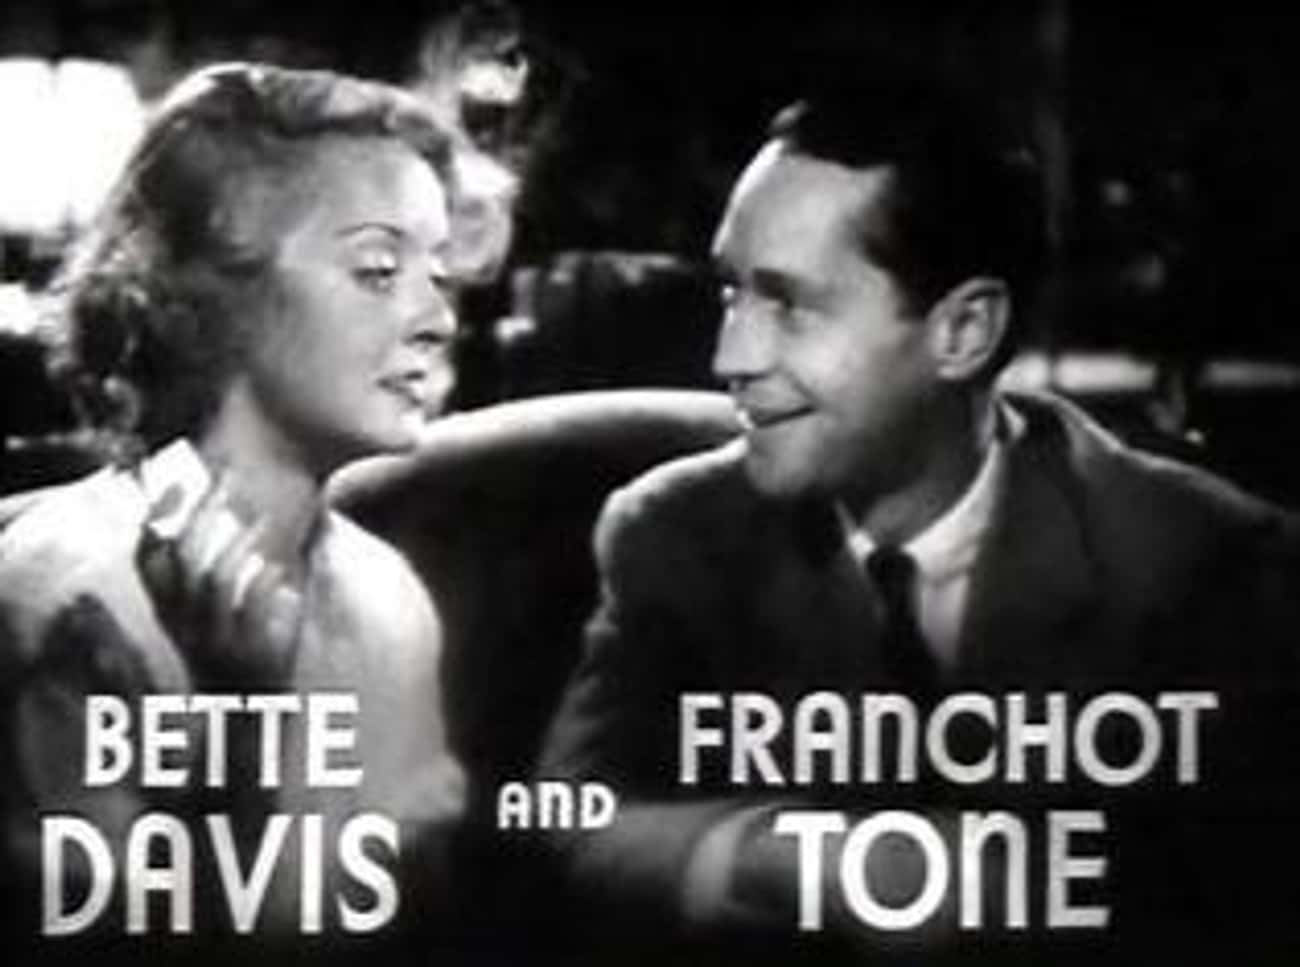 Their Feud Began In Earnest Over Crawford's Romance With Franchot Tone